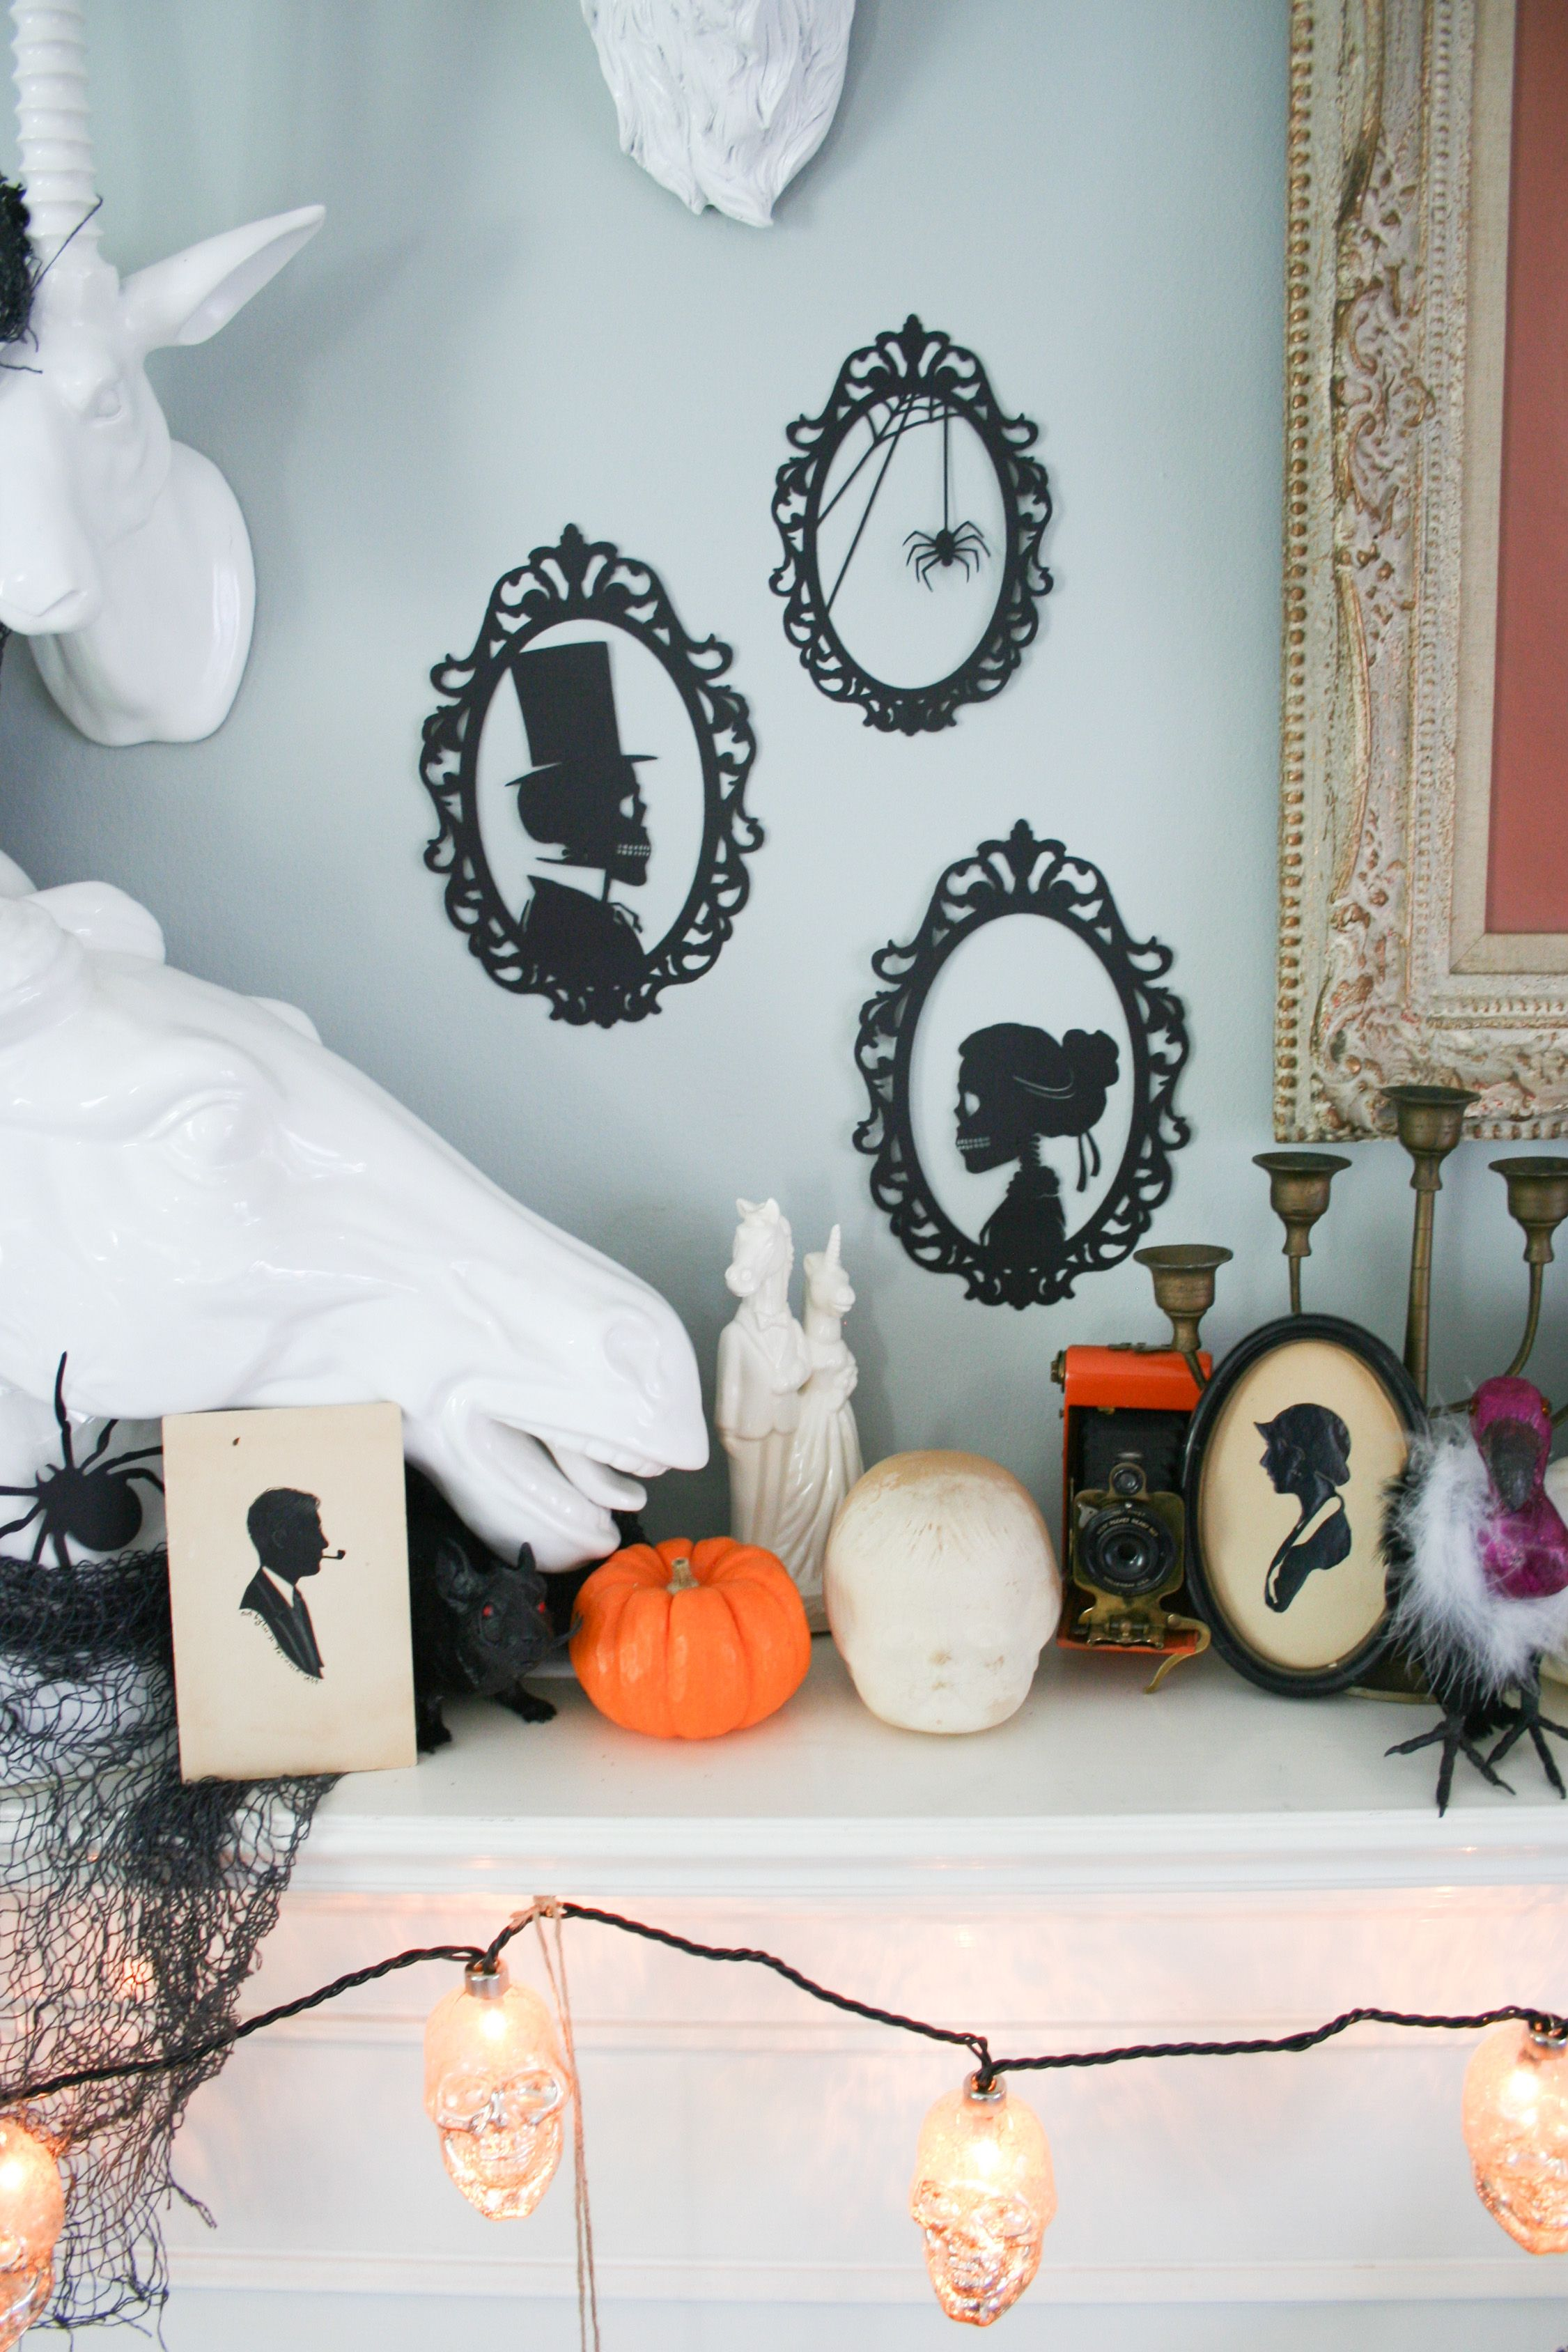 diy skeleton silhouettes | cricut tips & projects | pinterest